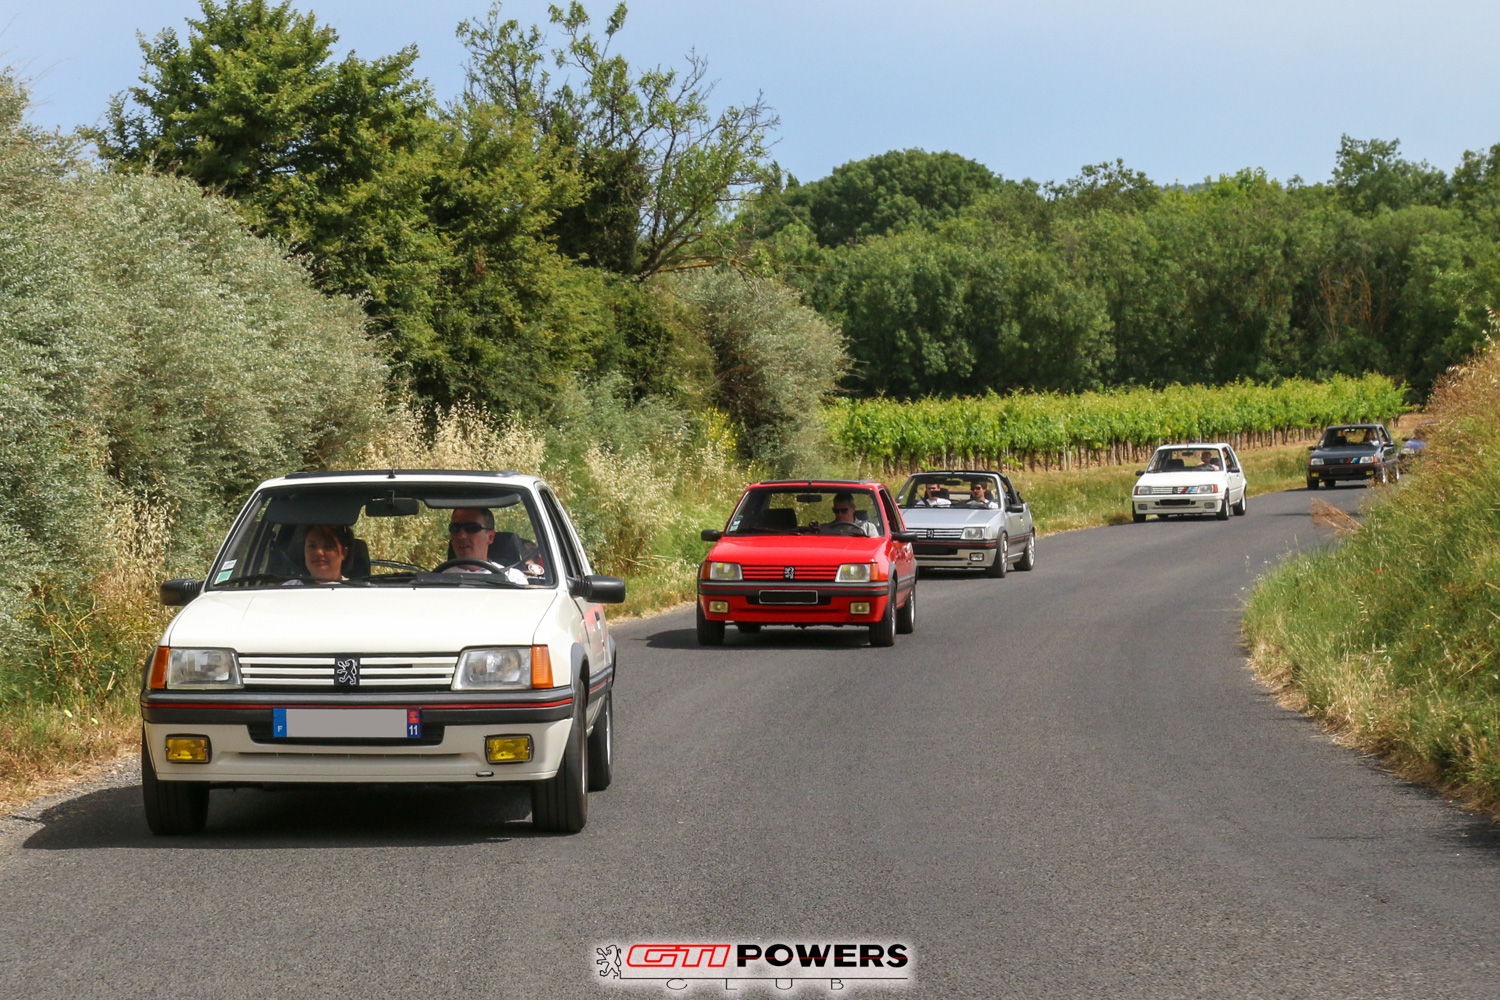 [GTIPOWERS DAYS] Nationale #4 - 8-9-10 Juin 2019 - Beziers - Page 8 Gtipow88